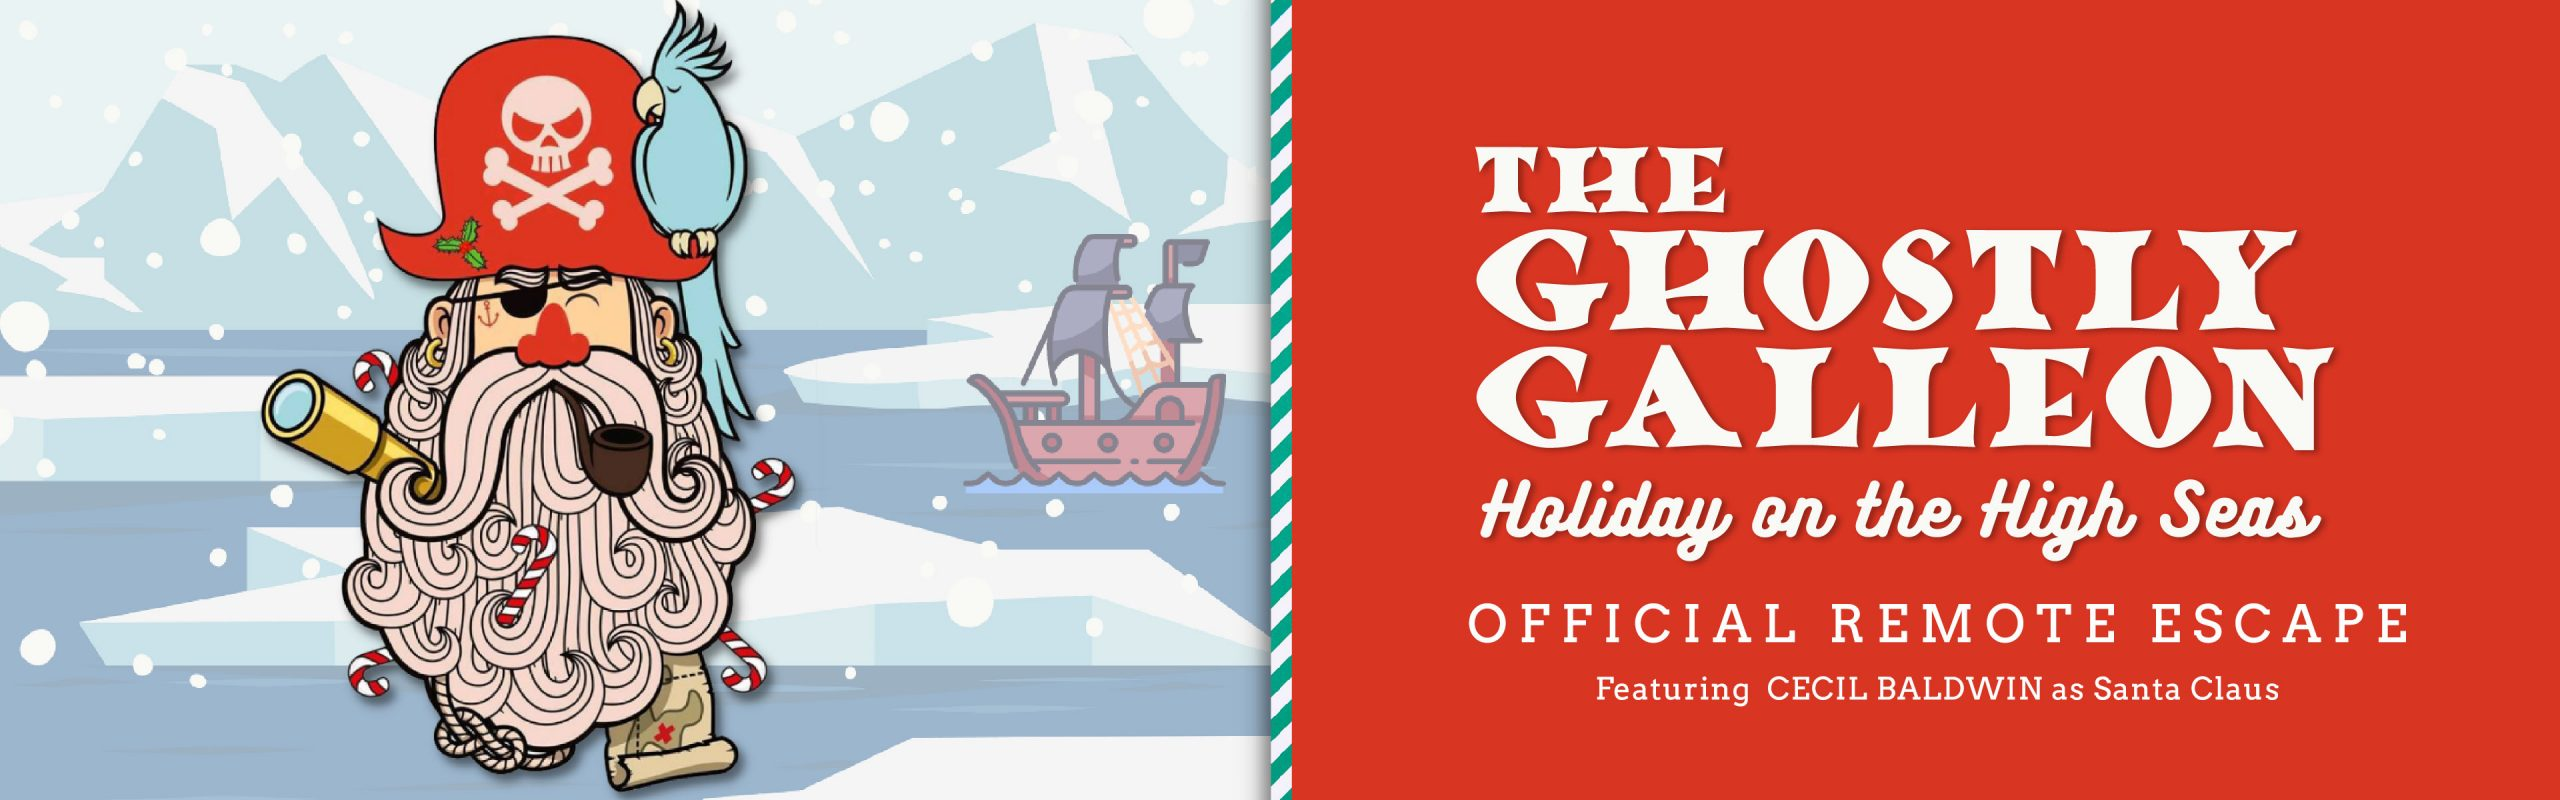 the ghostly galleon holiday on the high seas